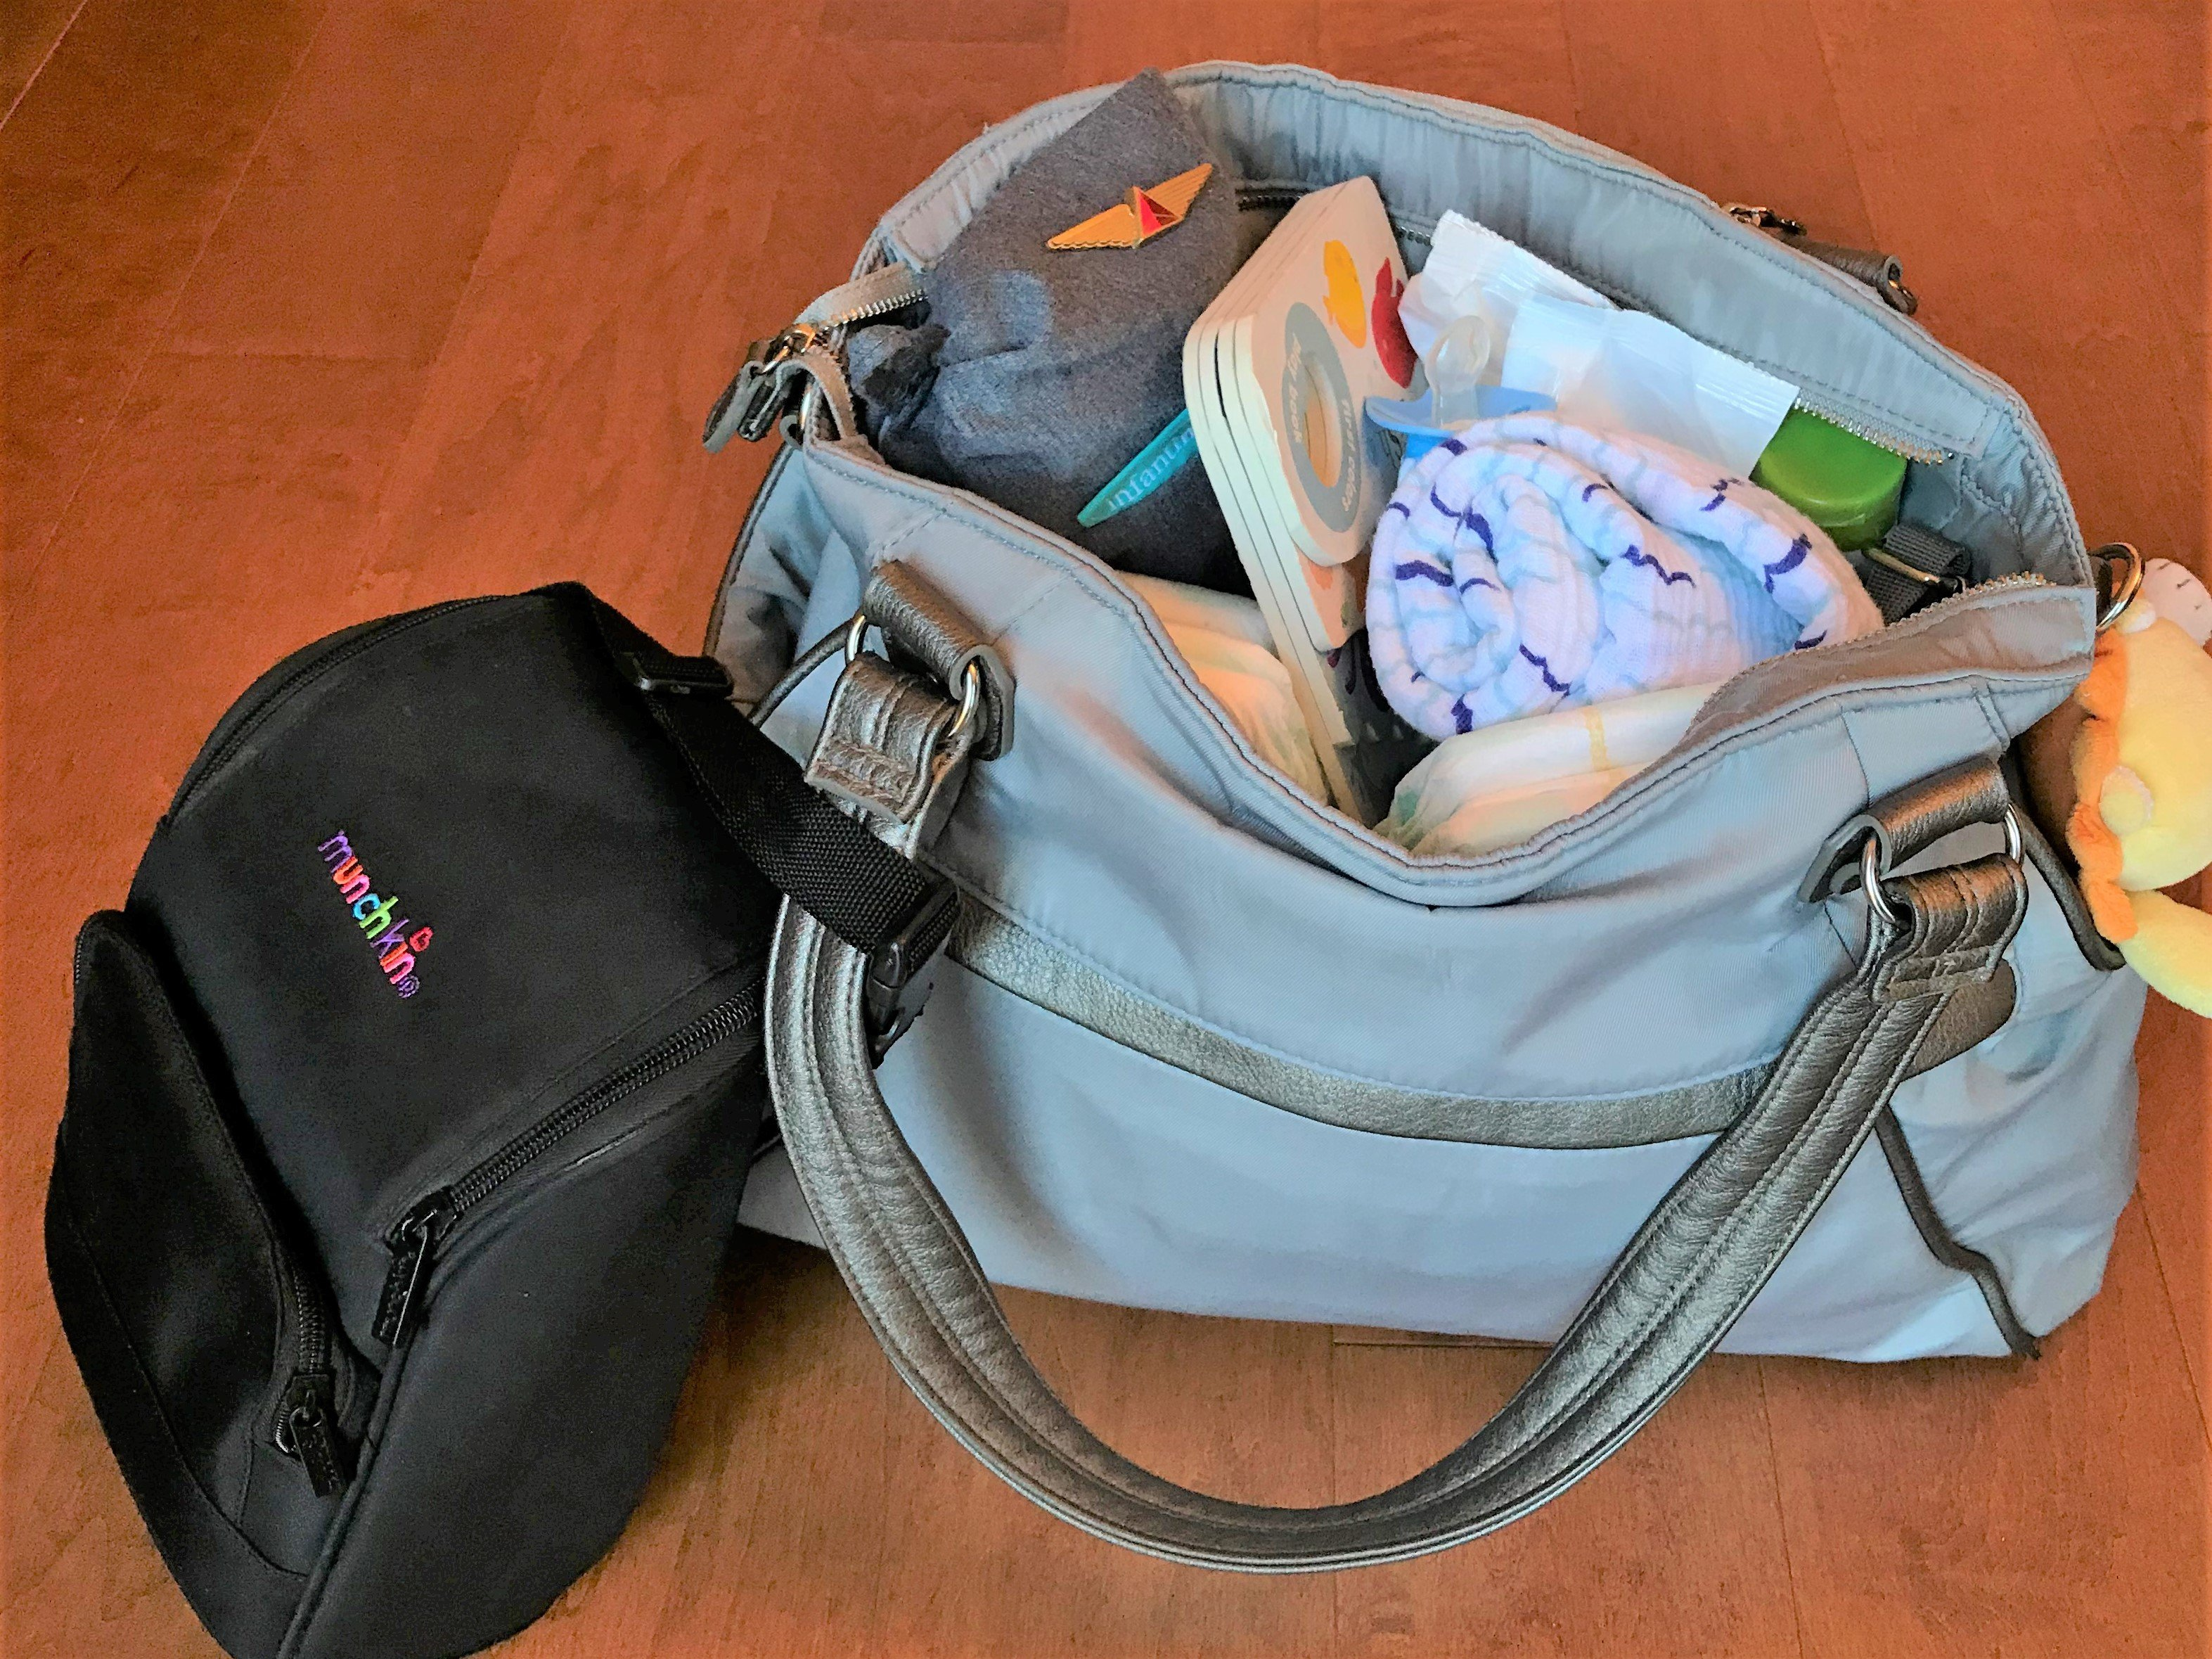 Looking for the best breastmilk cooler bag for breast milk storage? Here are our top picks of the best cooler for traveling with breastmilk, with reviews and recommendations! Save this pin and find the best breast milk cooler for your needs! #breastmilkstorage #breastmilkcooler #normalizebreastfeeding #babyproducts #babyregistry #babyitems